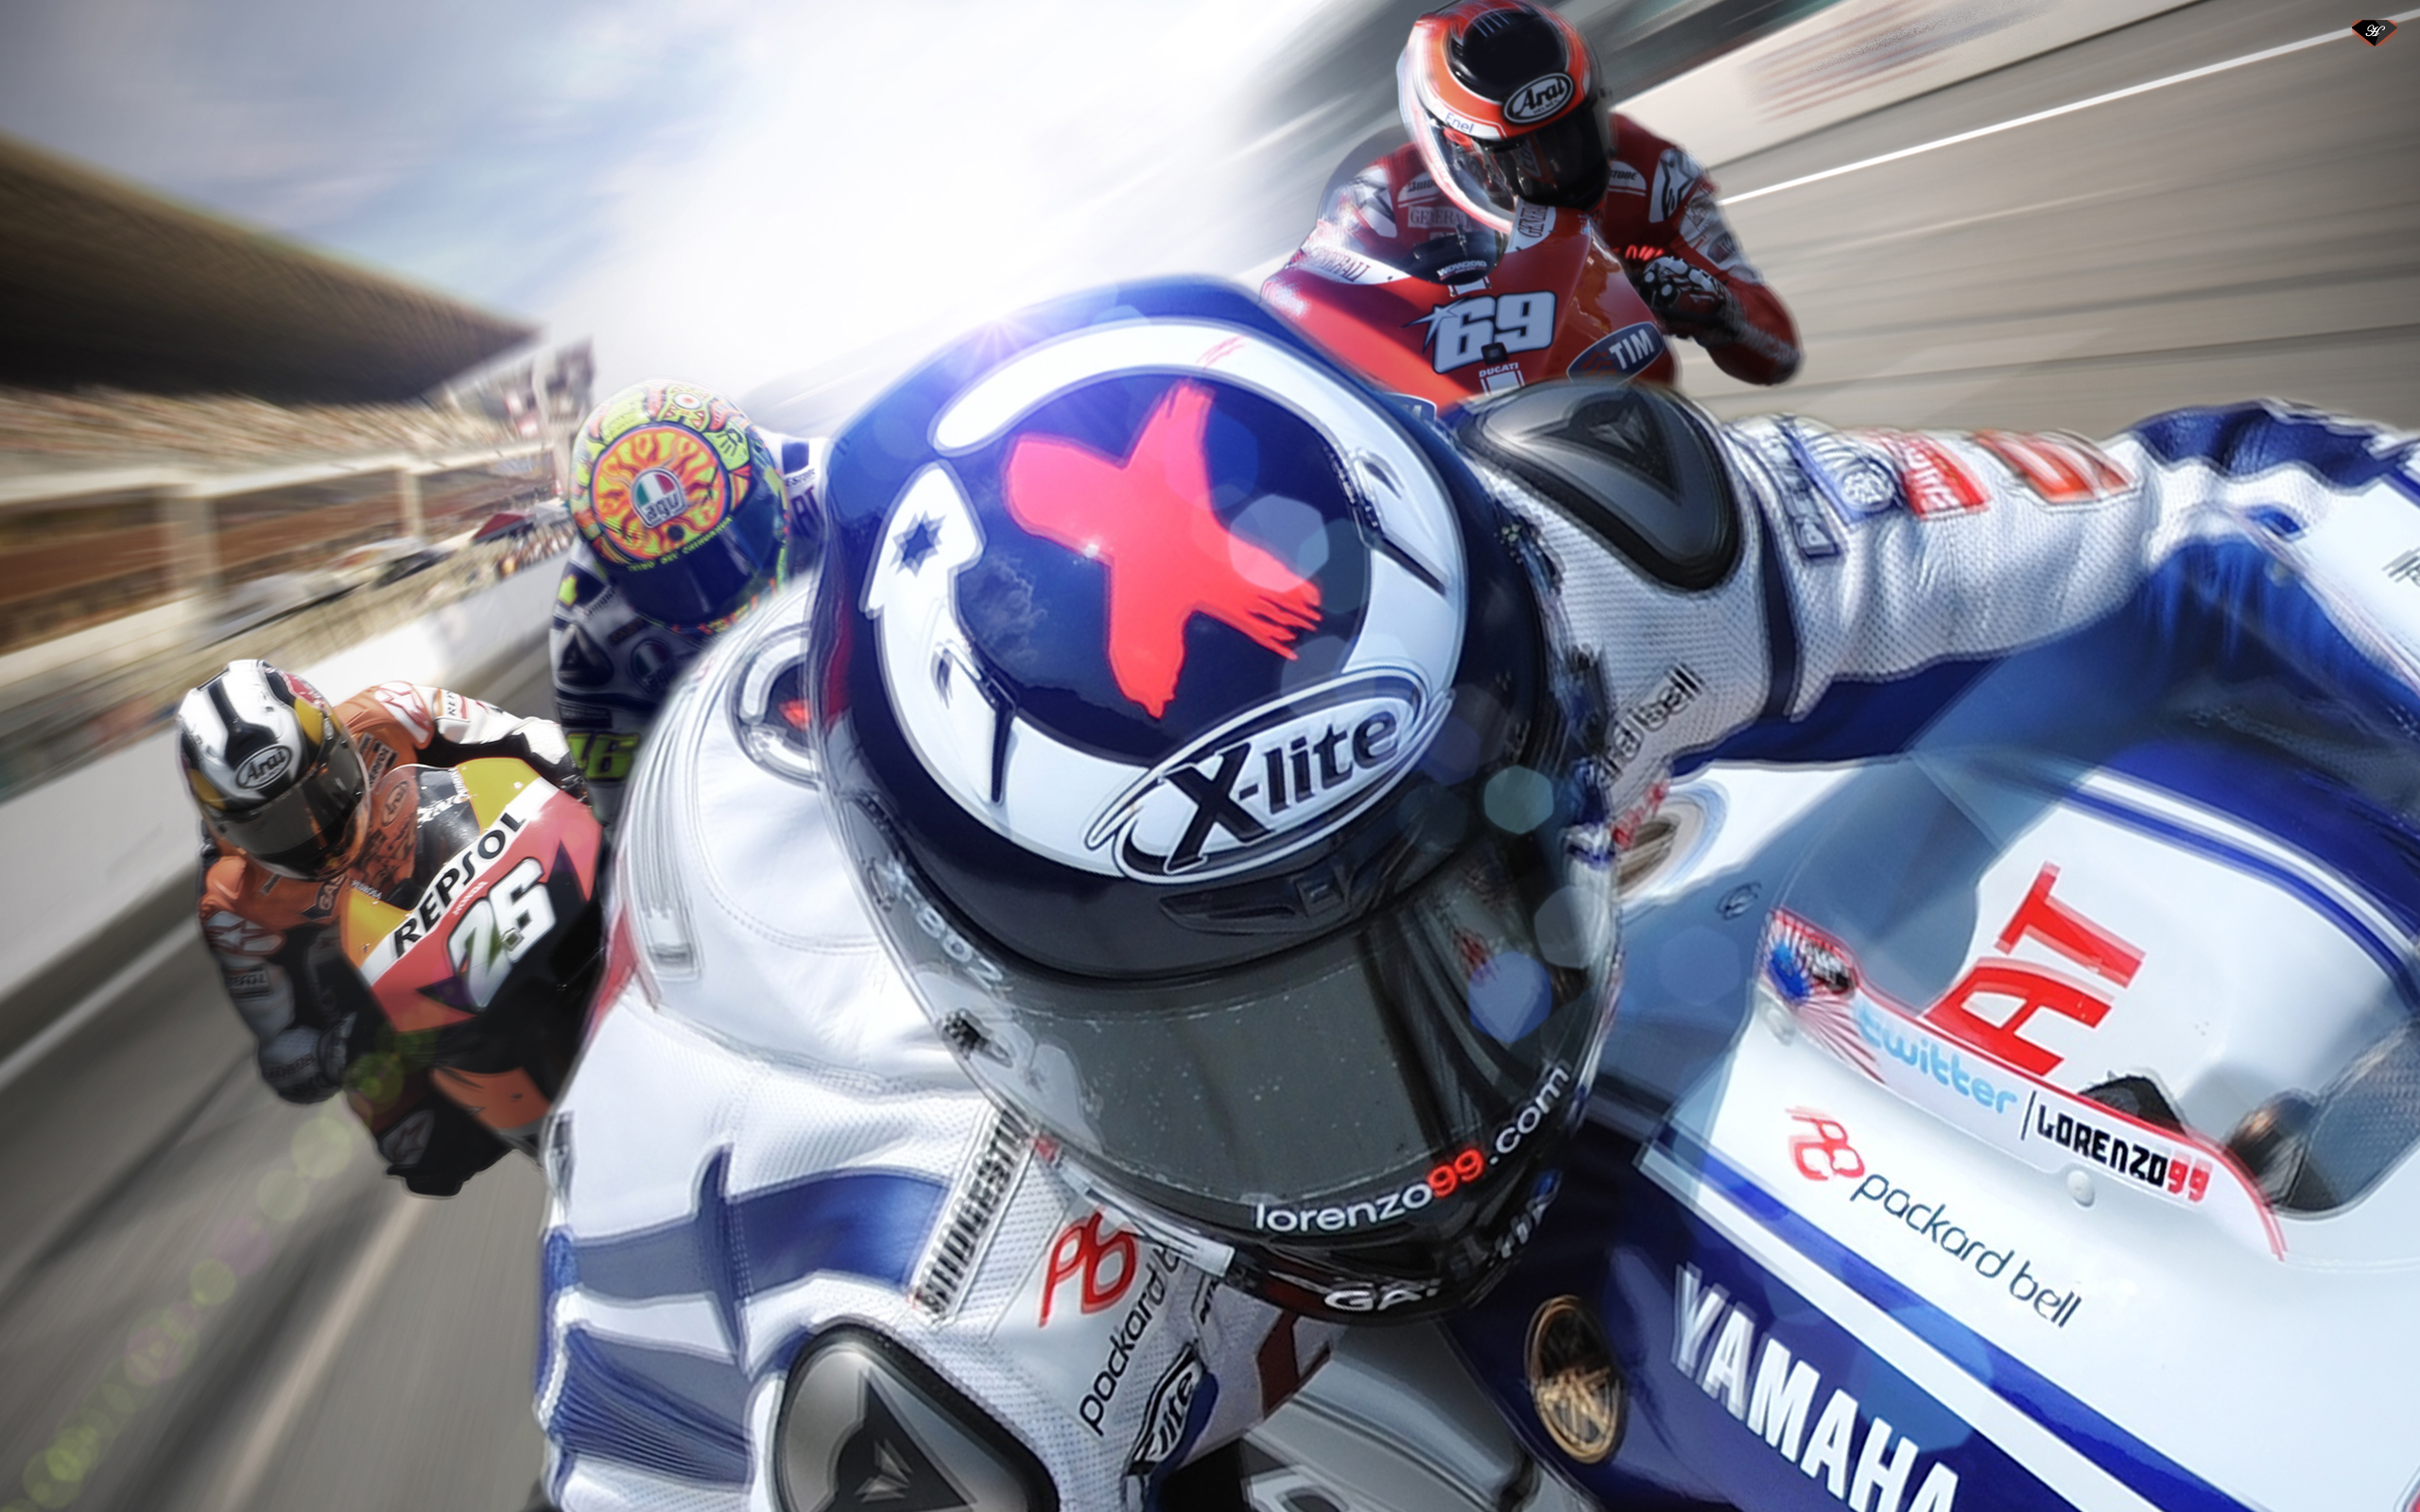 MotoGP Full HD Wallpaper and Background 2560x1600 ID371971